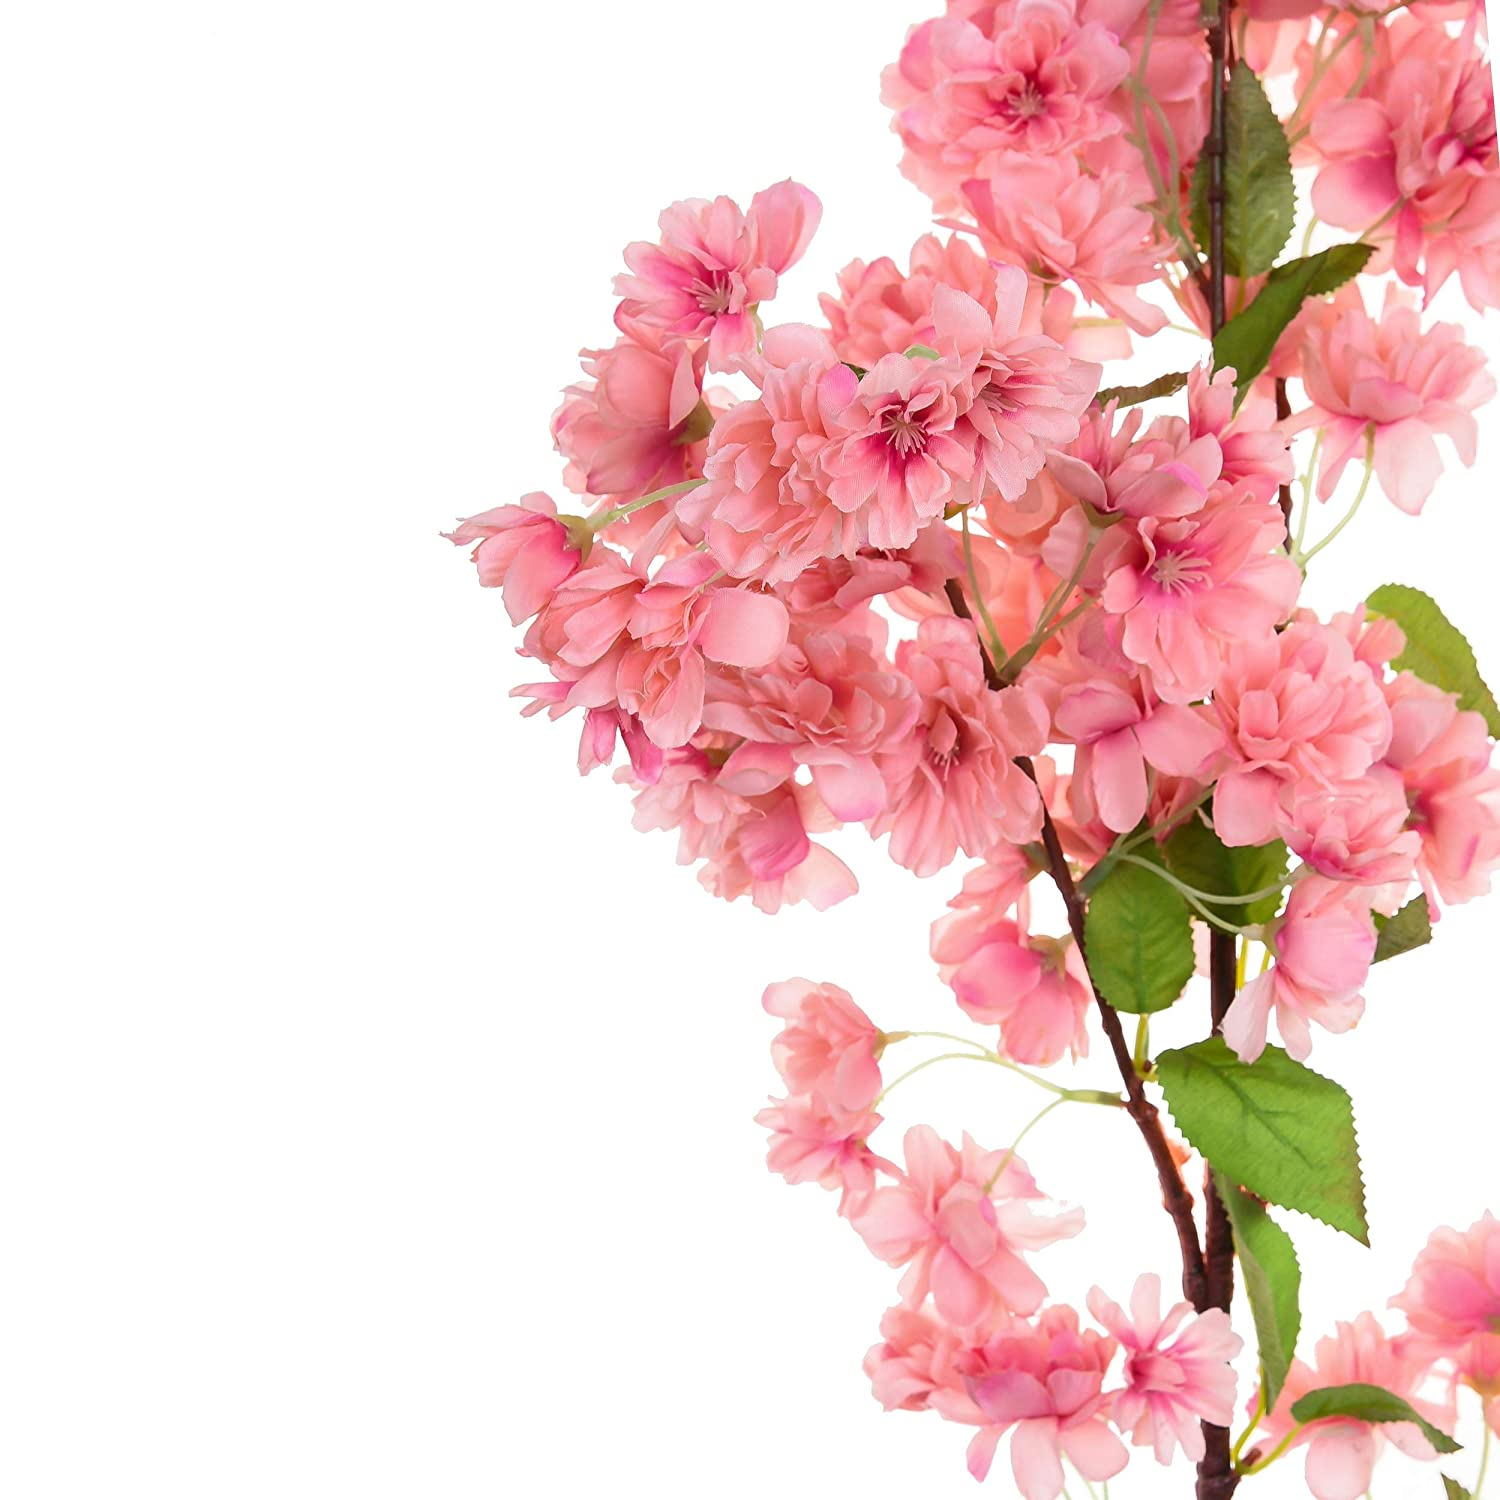 Buy Mei&Ge 40 Inch 4 Branches Dense Cherry Blossom Artificial Flowers Home Wedding  Decor (Peach) Online at Low Prices in India - Amazon.in